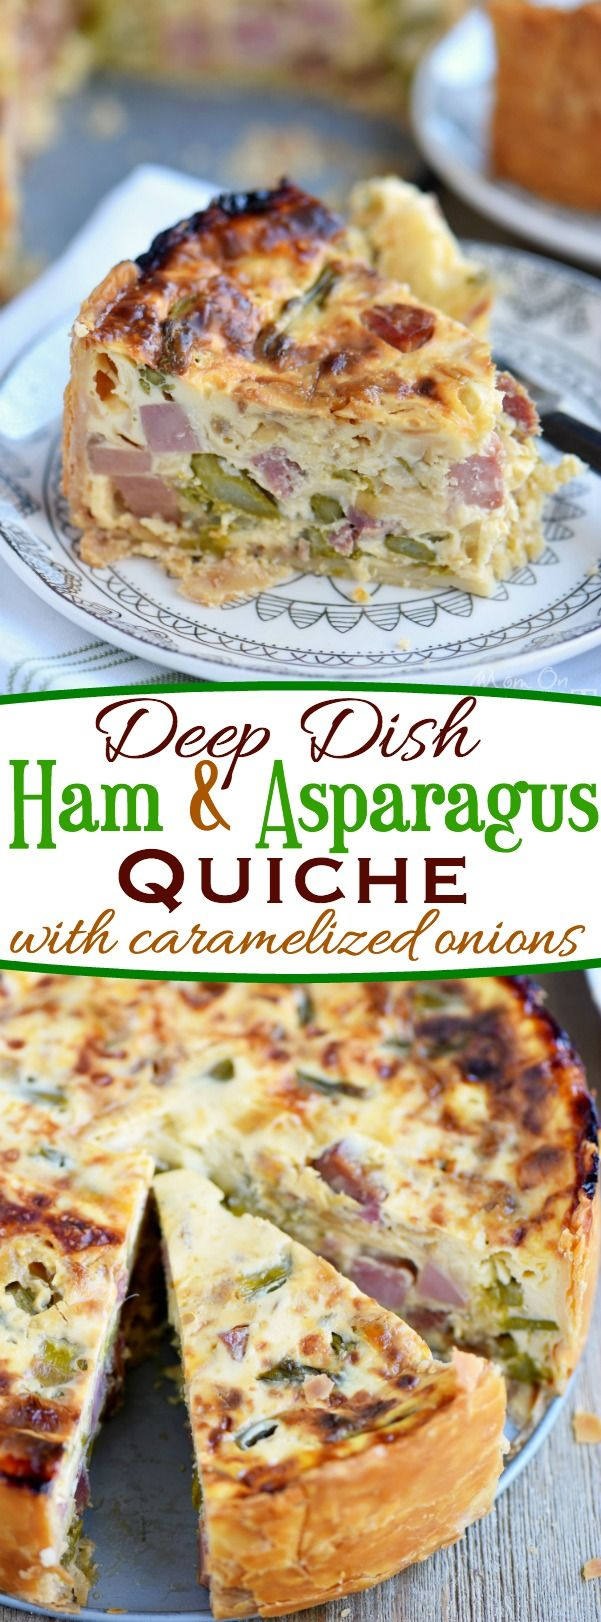 This Deep Dish Ham and Asparagus Quiche with caramelized onions is the perfect addition to your holiday brunch menu! Make it the day before and serve cold or room temperature - both ways are delicious (Baking Eggs Asparagus)